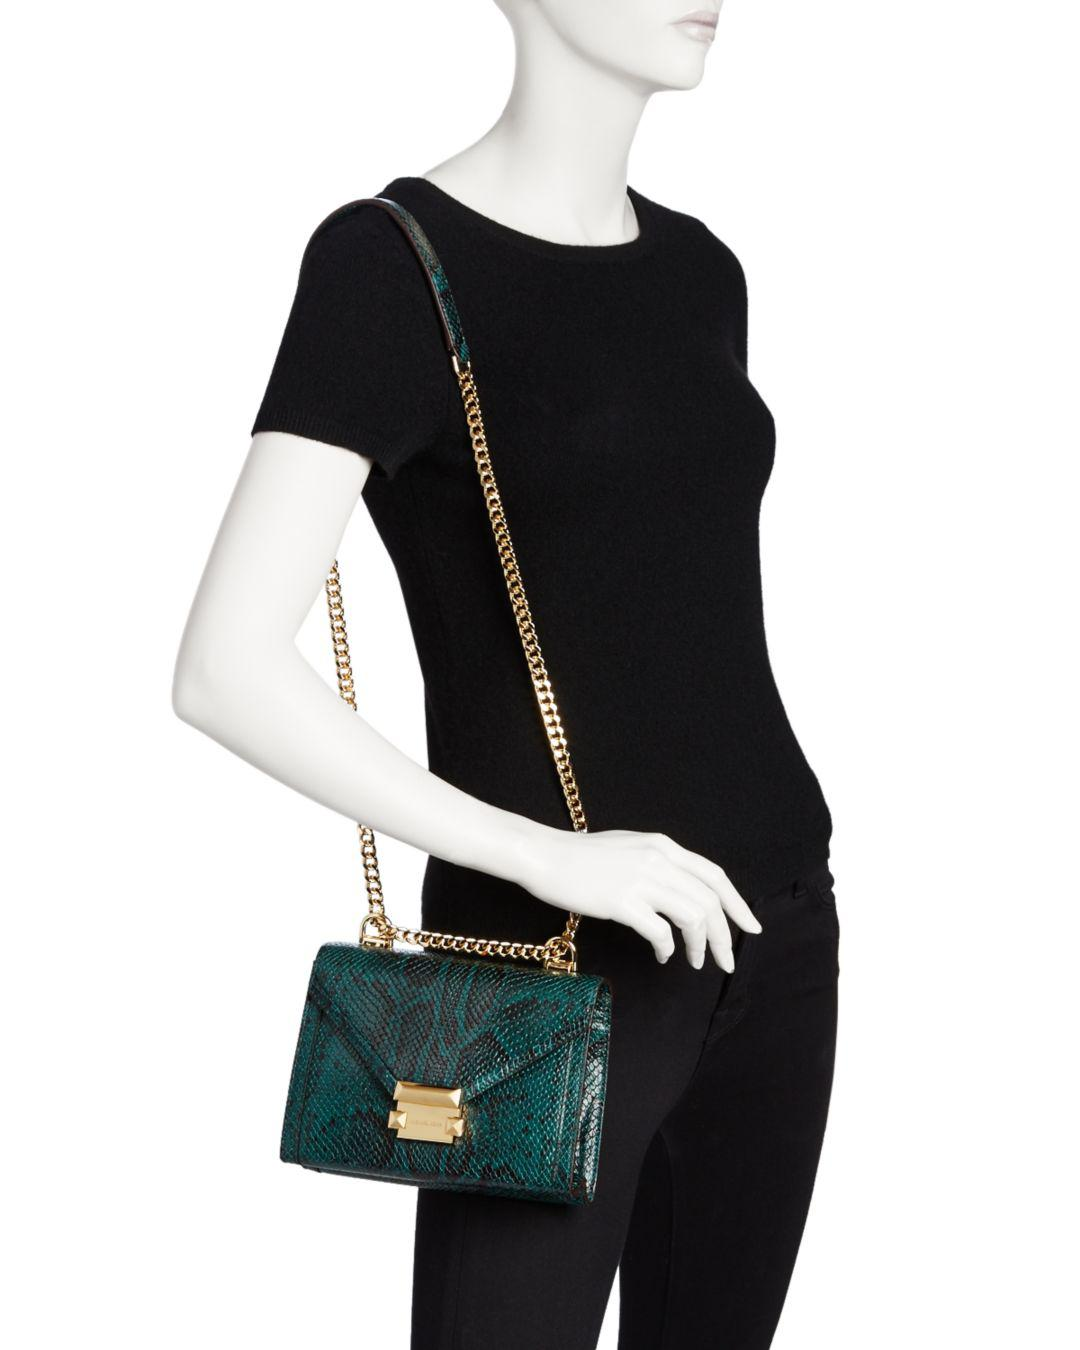 76efa9c64c43 MICHAEL Michael Kors Whitney Small Leather Shoulder Bag in Green - Lyst